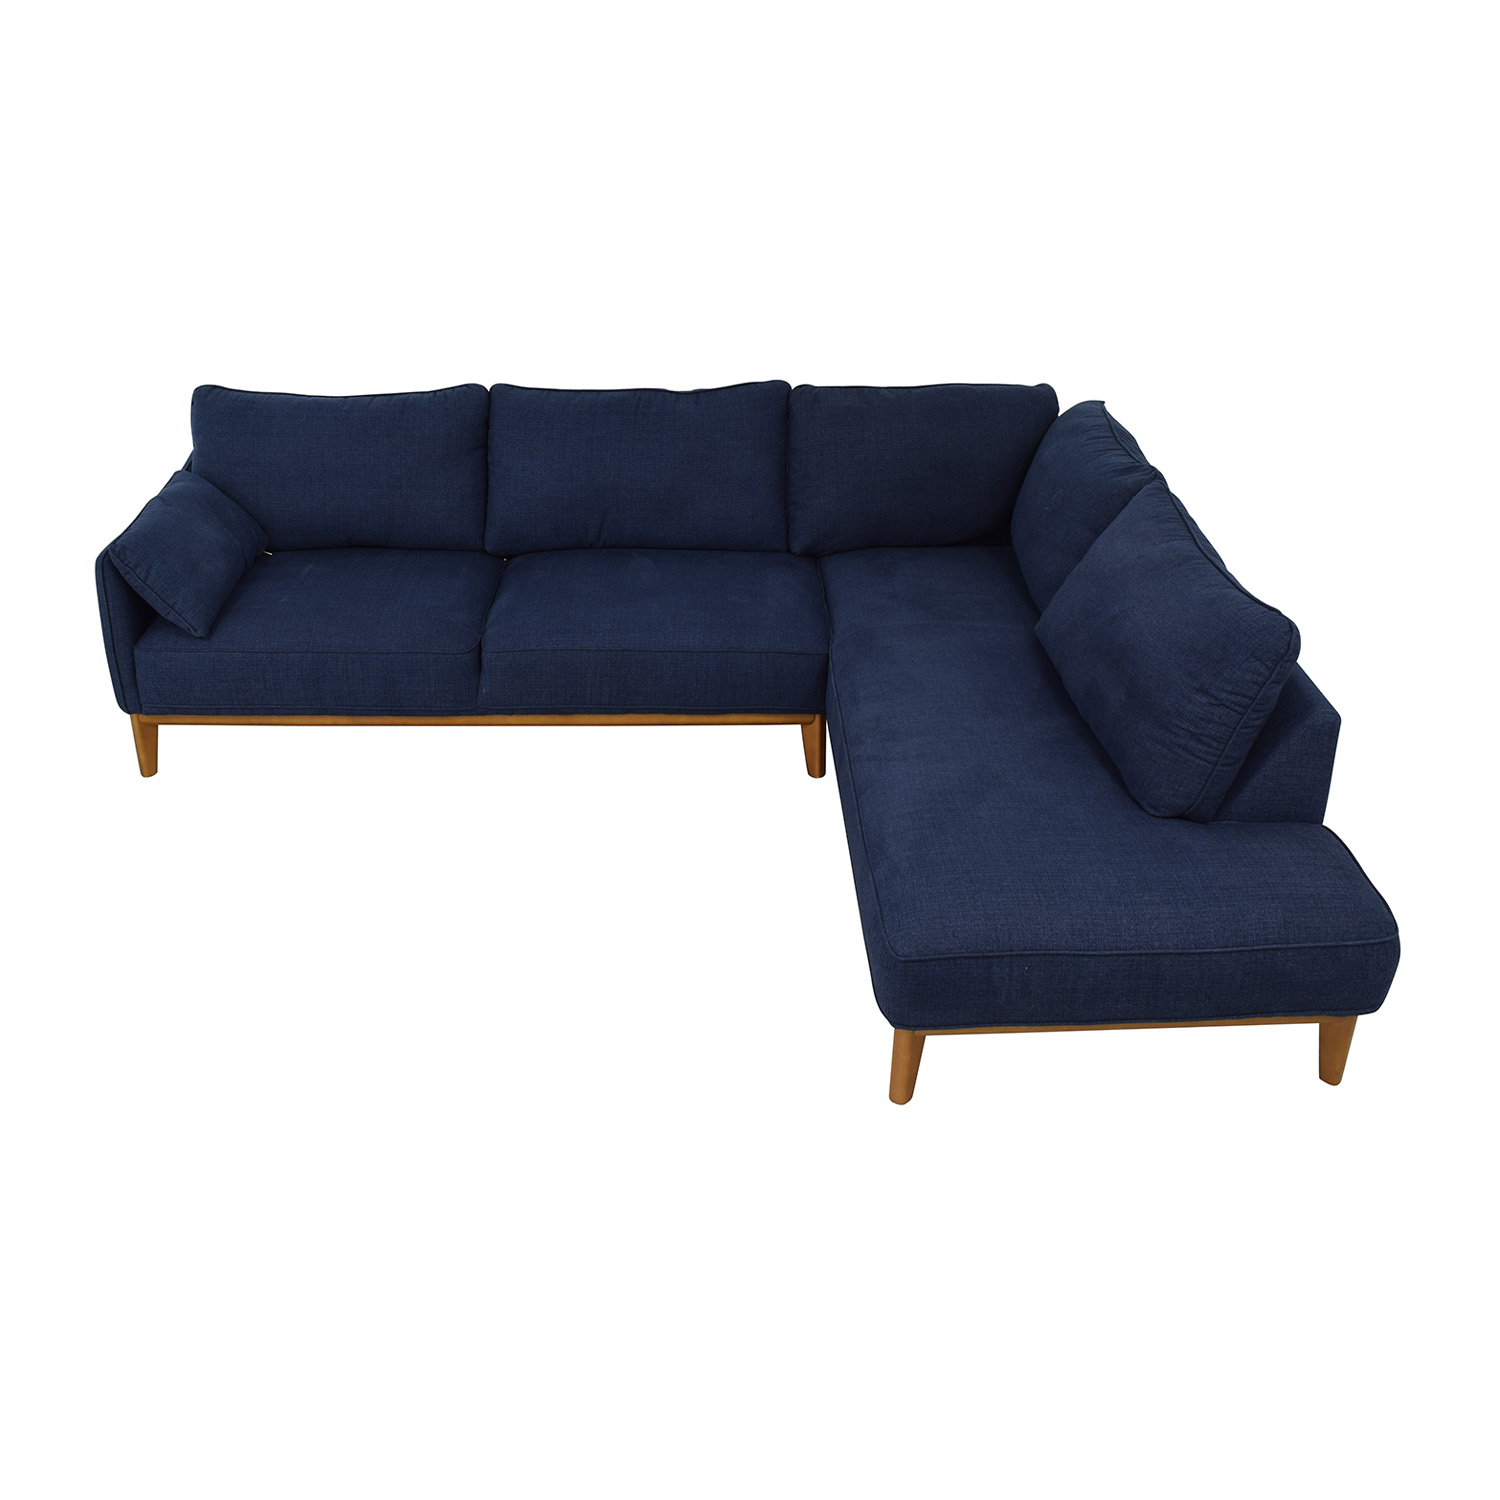 buy Macy's Macy's Sectional Sofa online